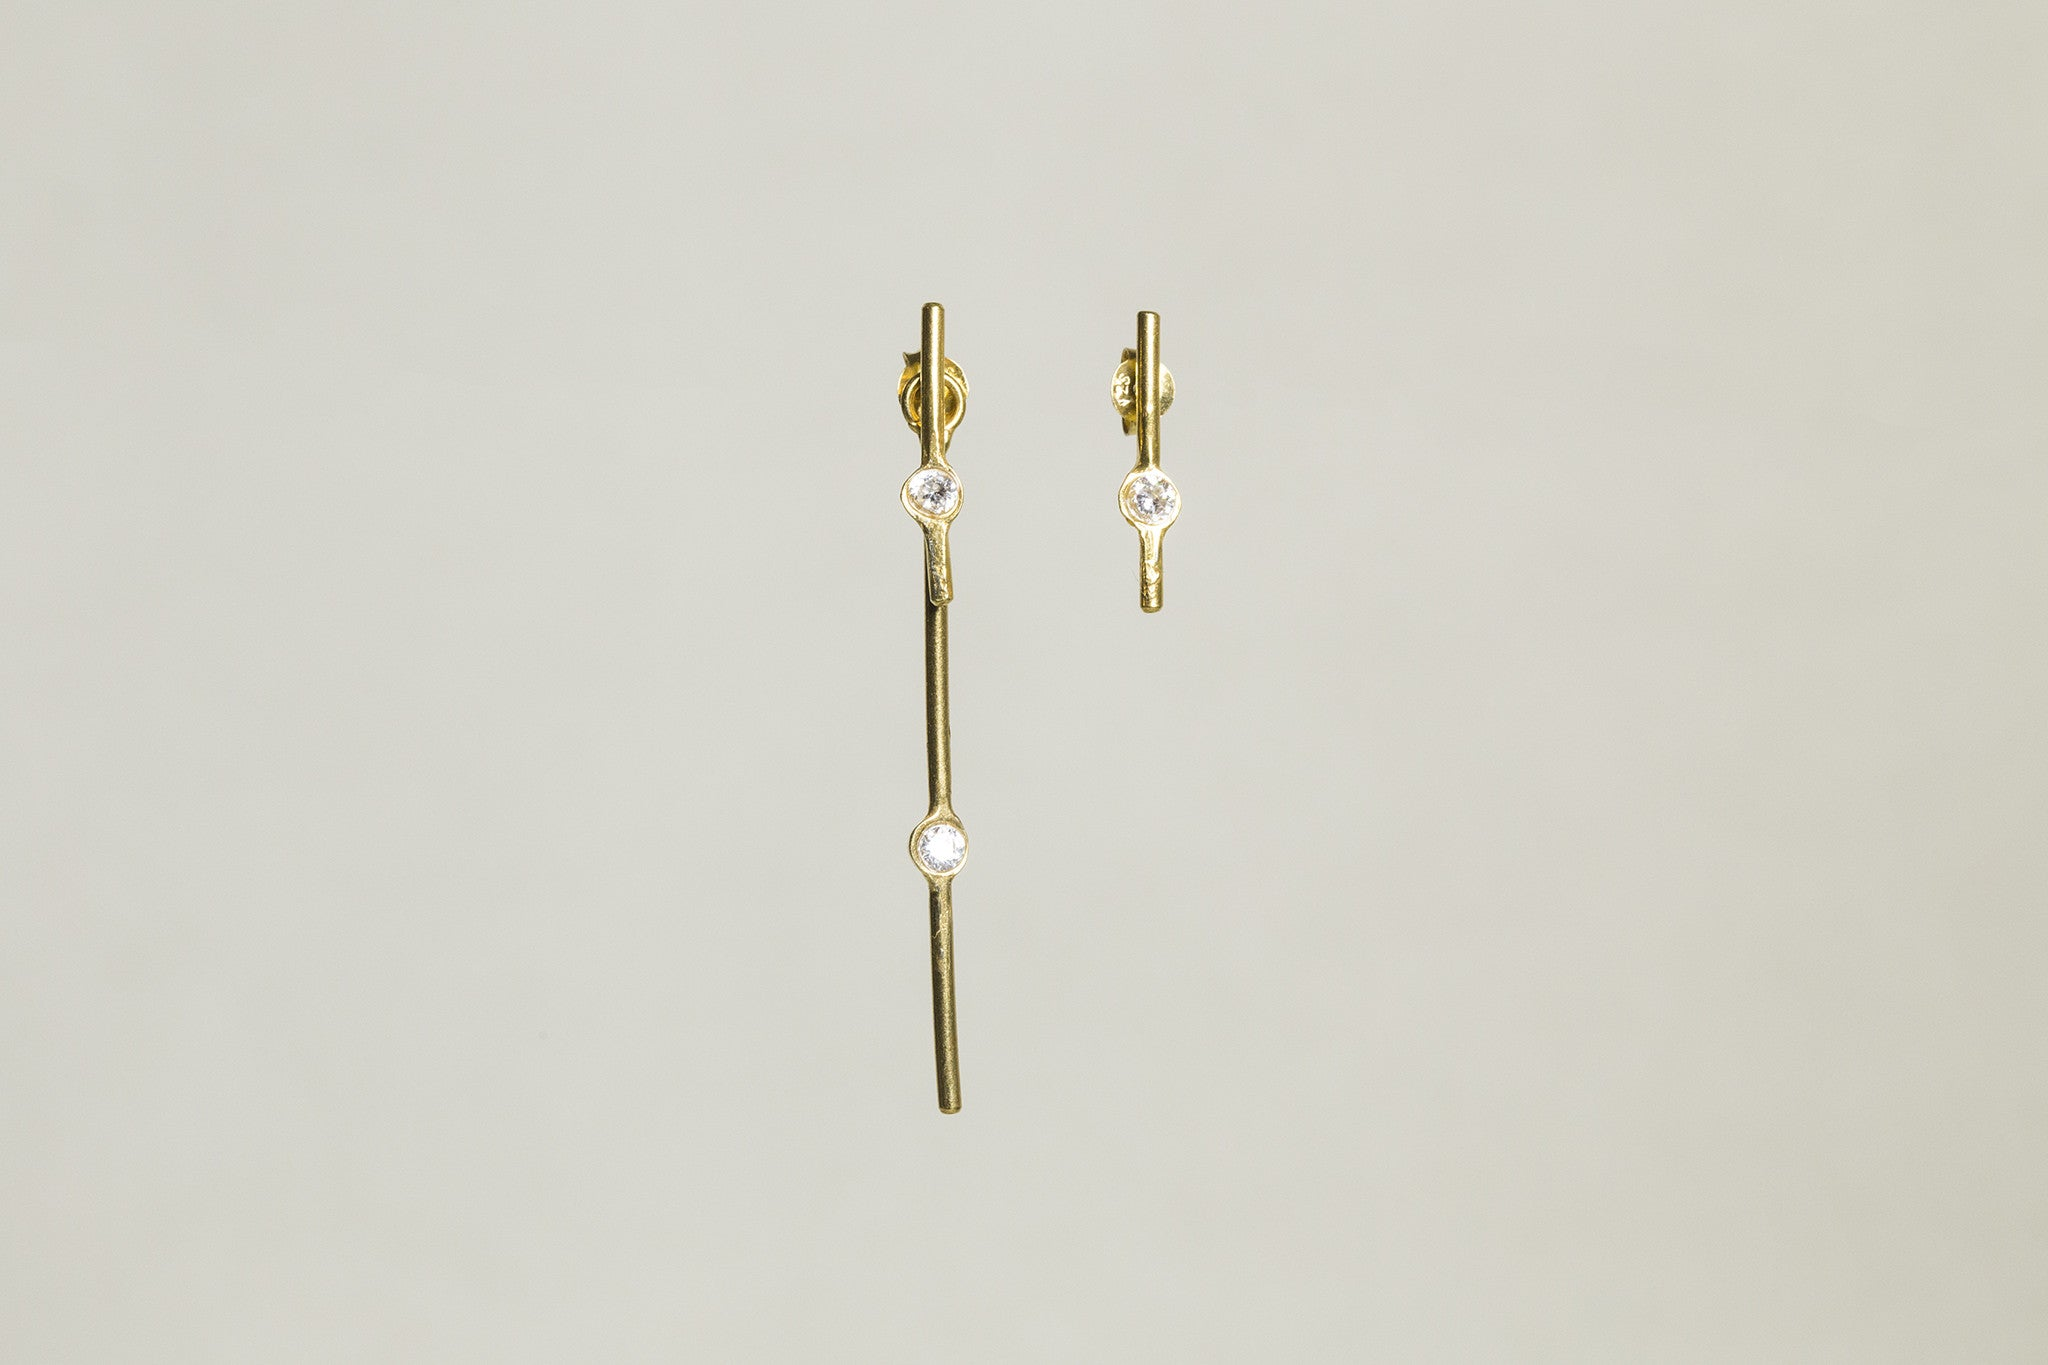 similar to starburst earrings but for minimalists - the long stick jacket can be taken off! also available on feltlondon.com